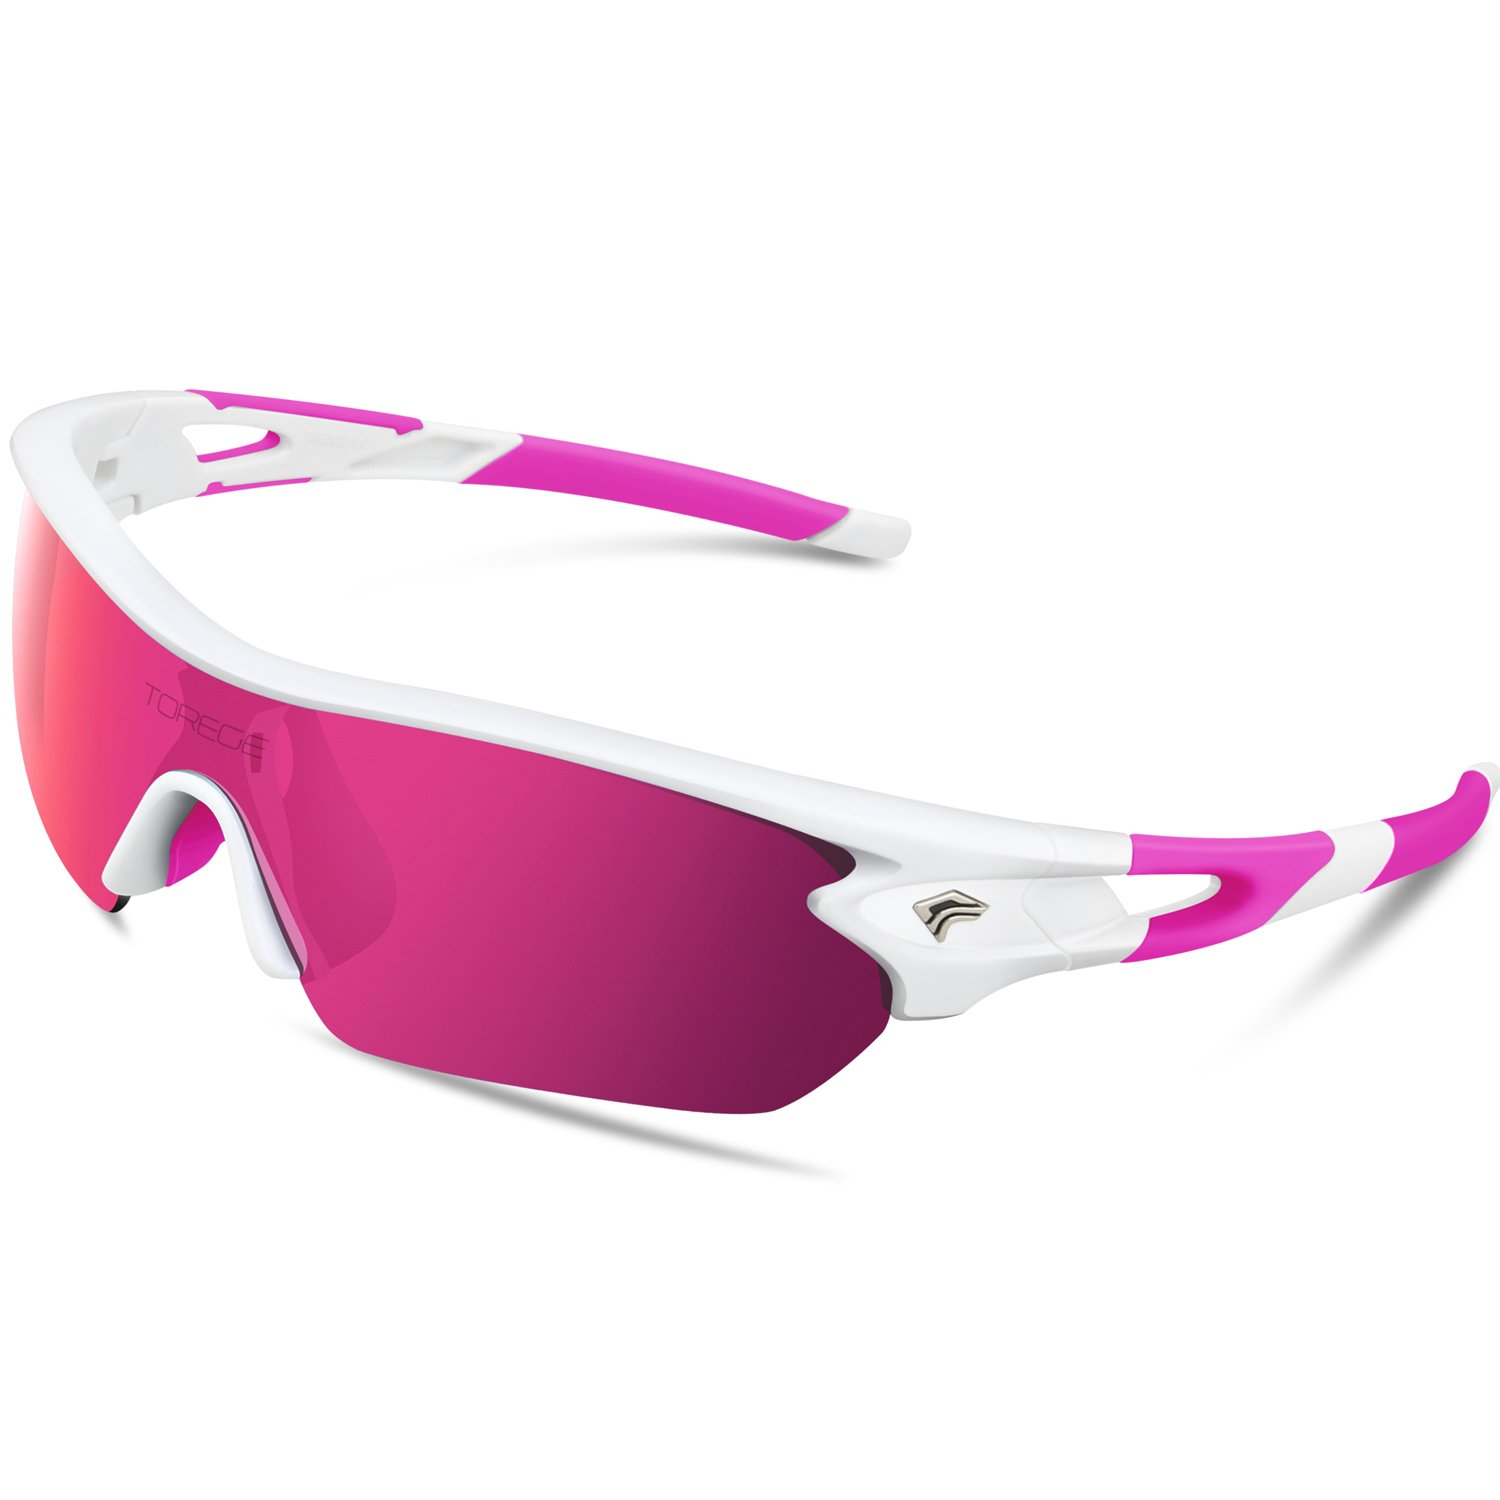 TOREGE Polarized Sports Sunglasses with 5 Interchangeable Lenes for Men Women Cycling Running Driving Fishing Golf Baseball Glasses TR002 (WhiteΠnk TipsΠnk len)